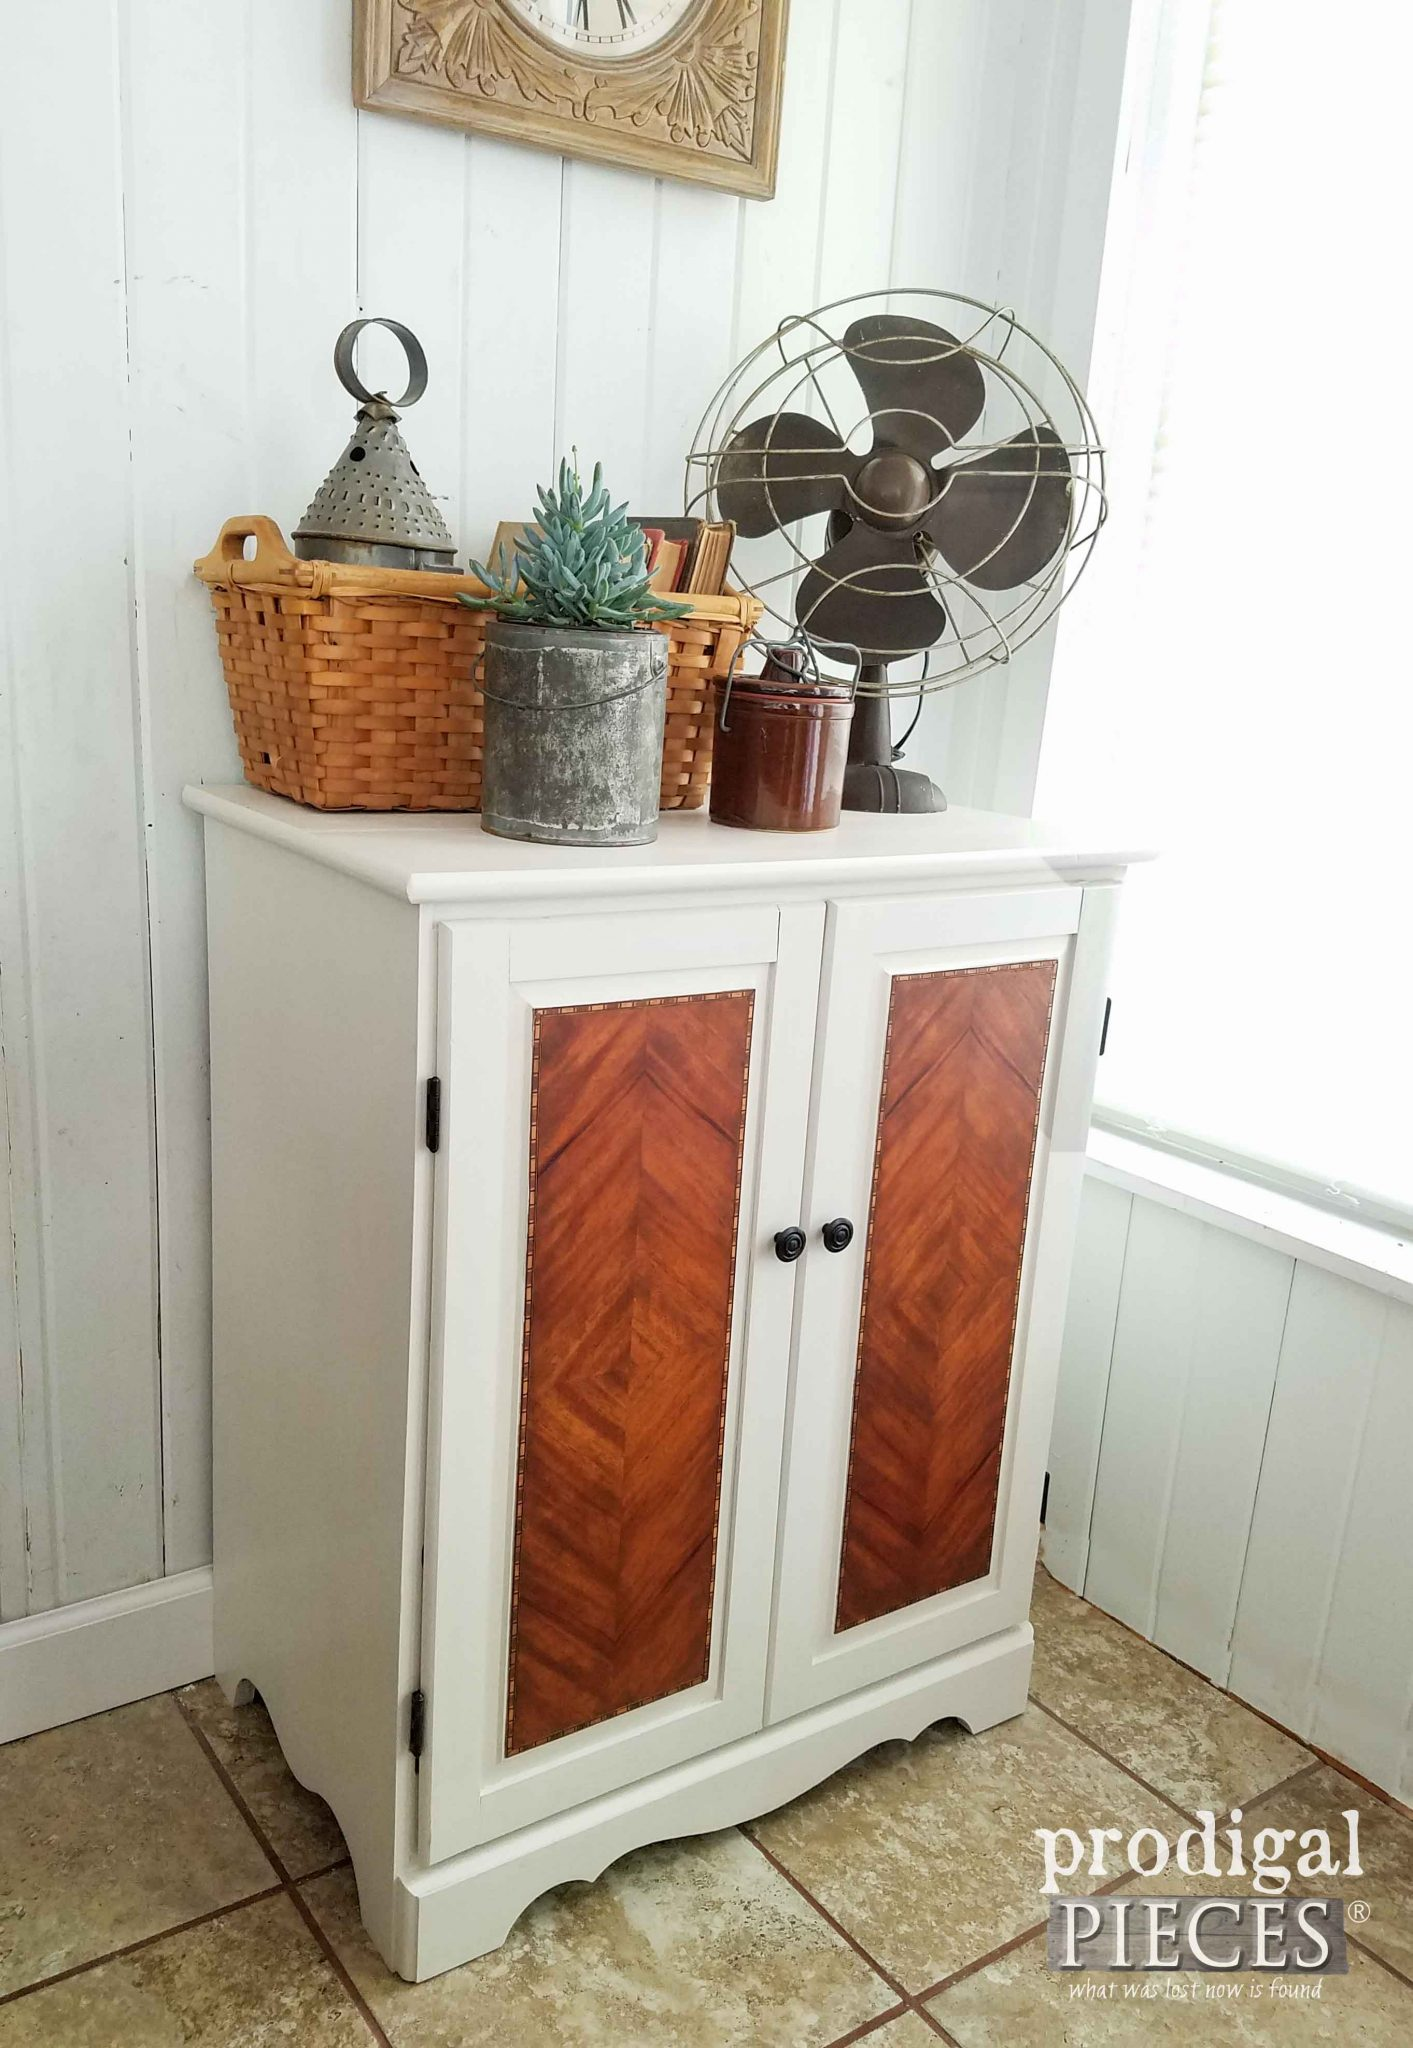 Farmhouse Chic Cabinet with Details on How to get the Look by Prodigal Pieces | prodigalpieces.com